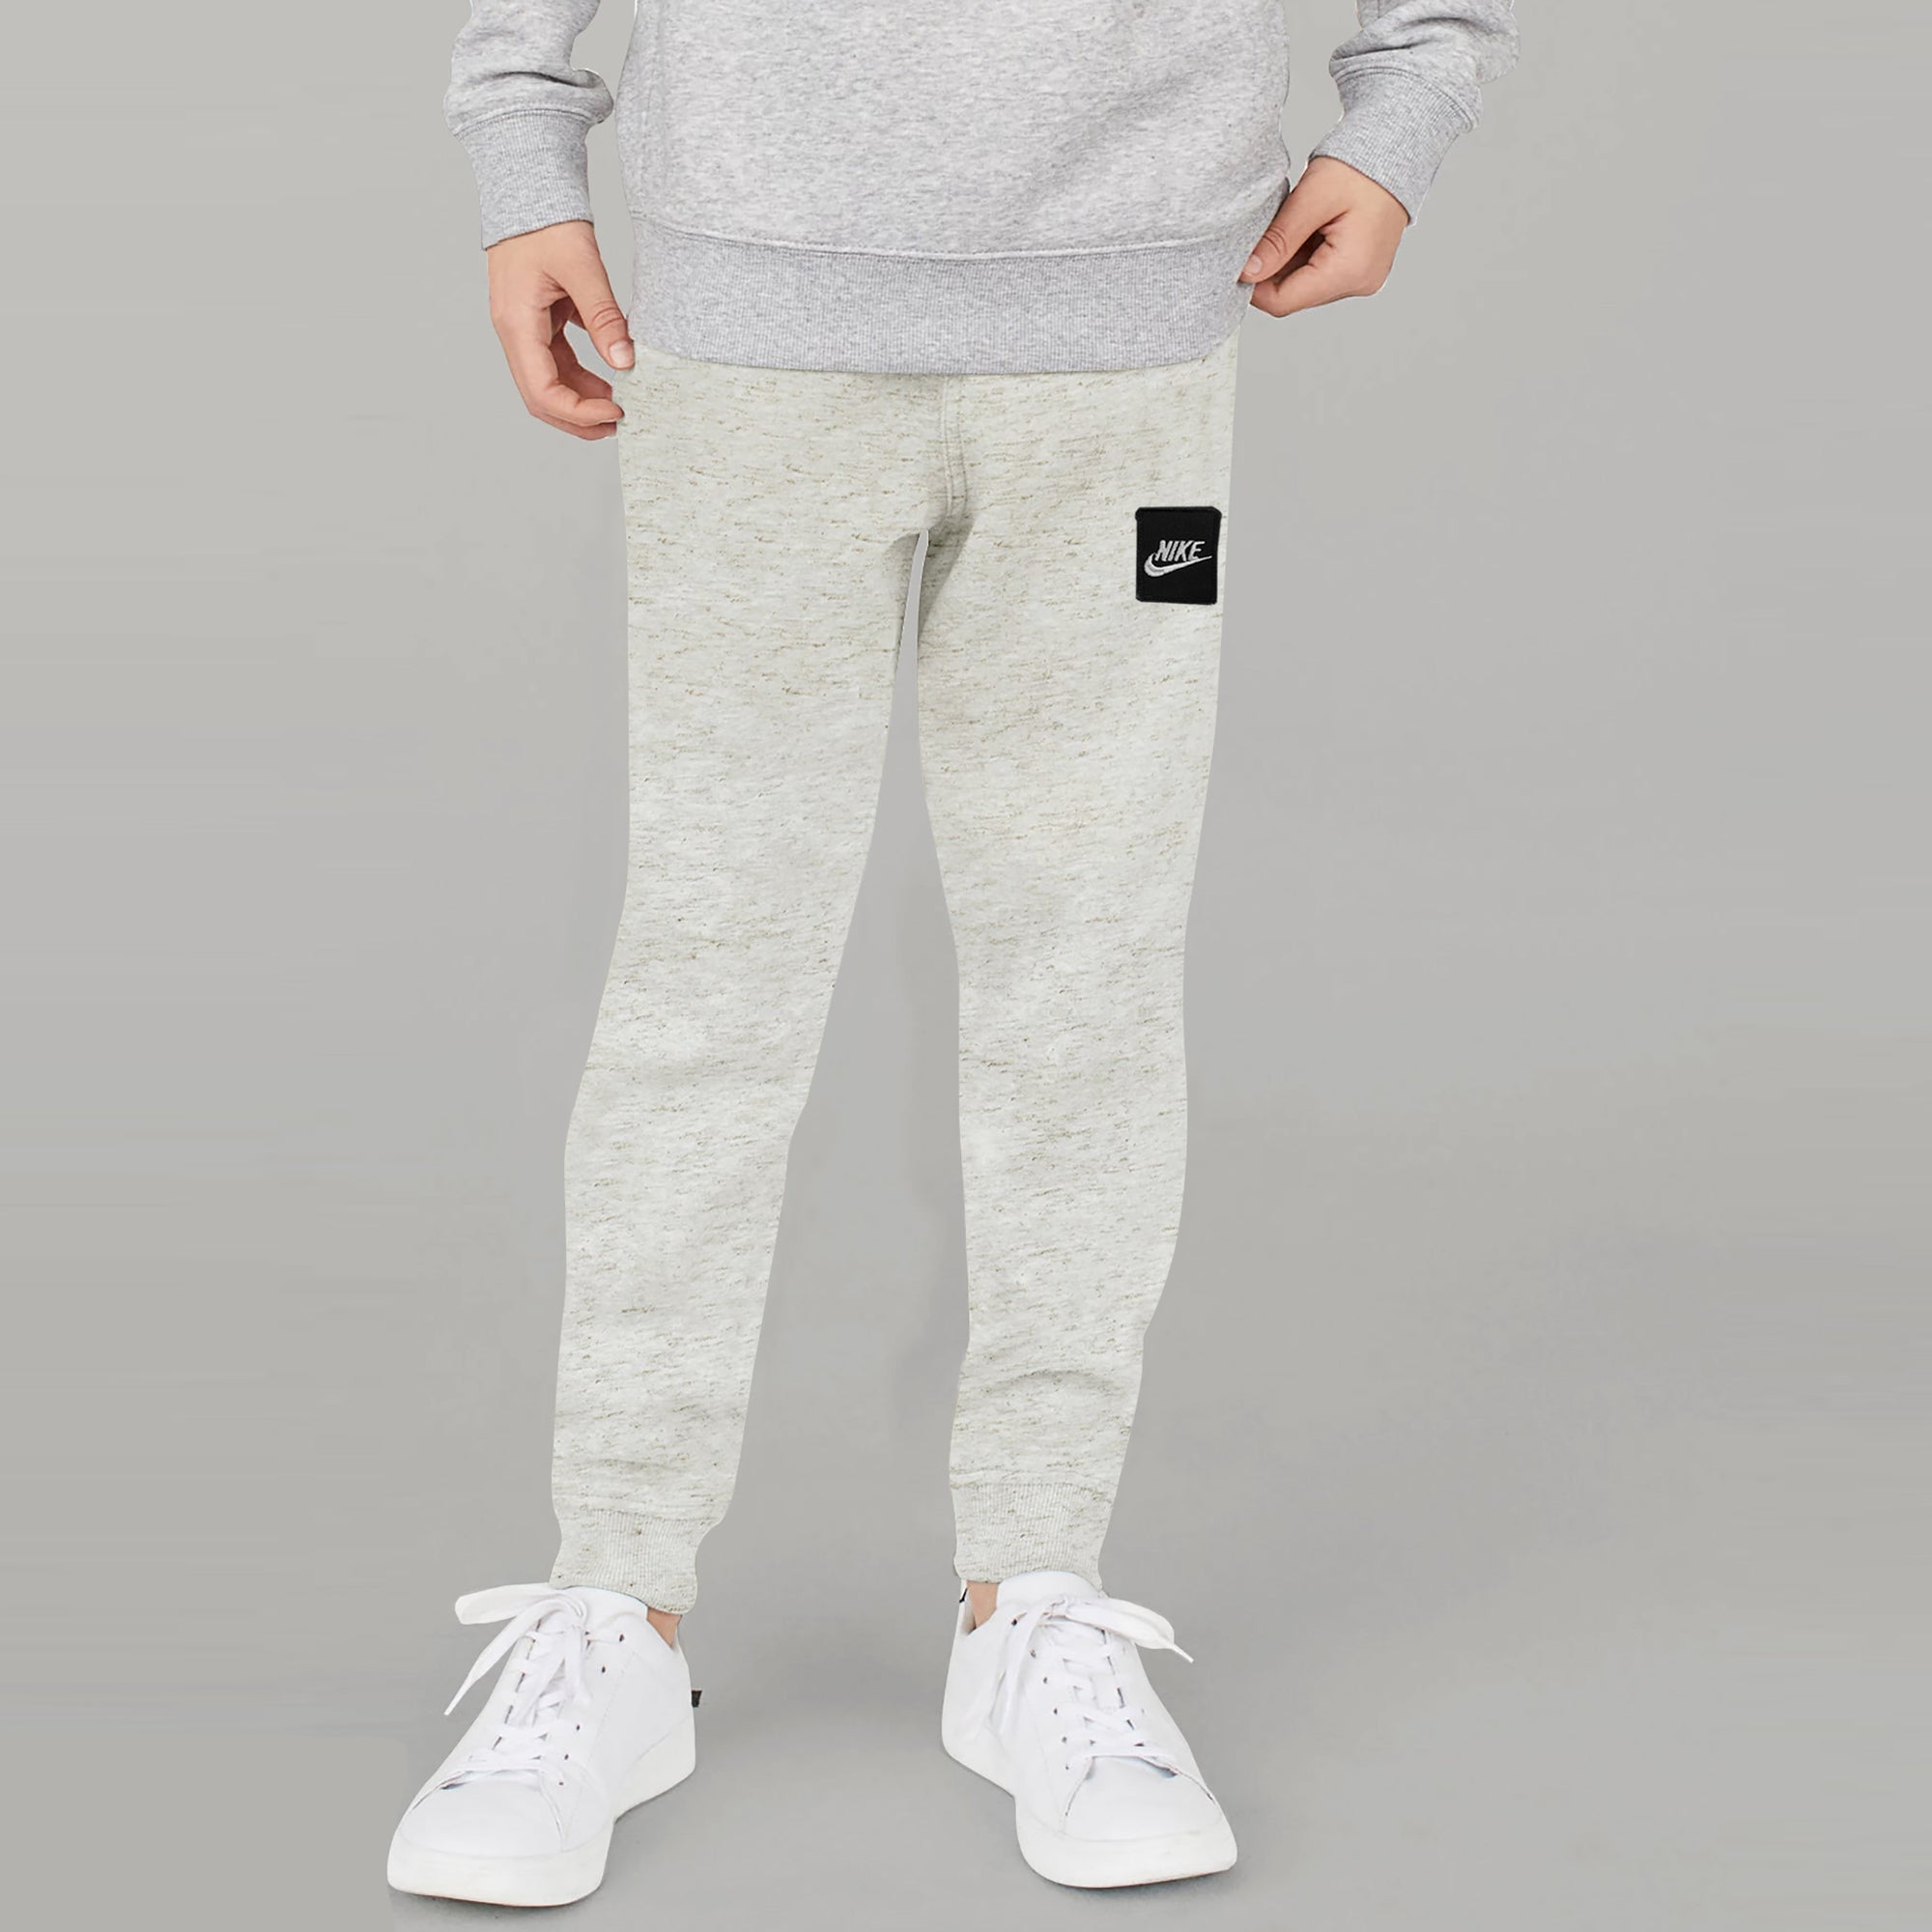 NK Terry Fleece Slim Fit Jogger Trouser For Kids-Off White Melange-SP1300